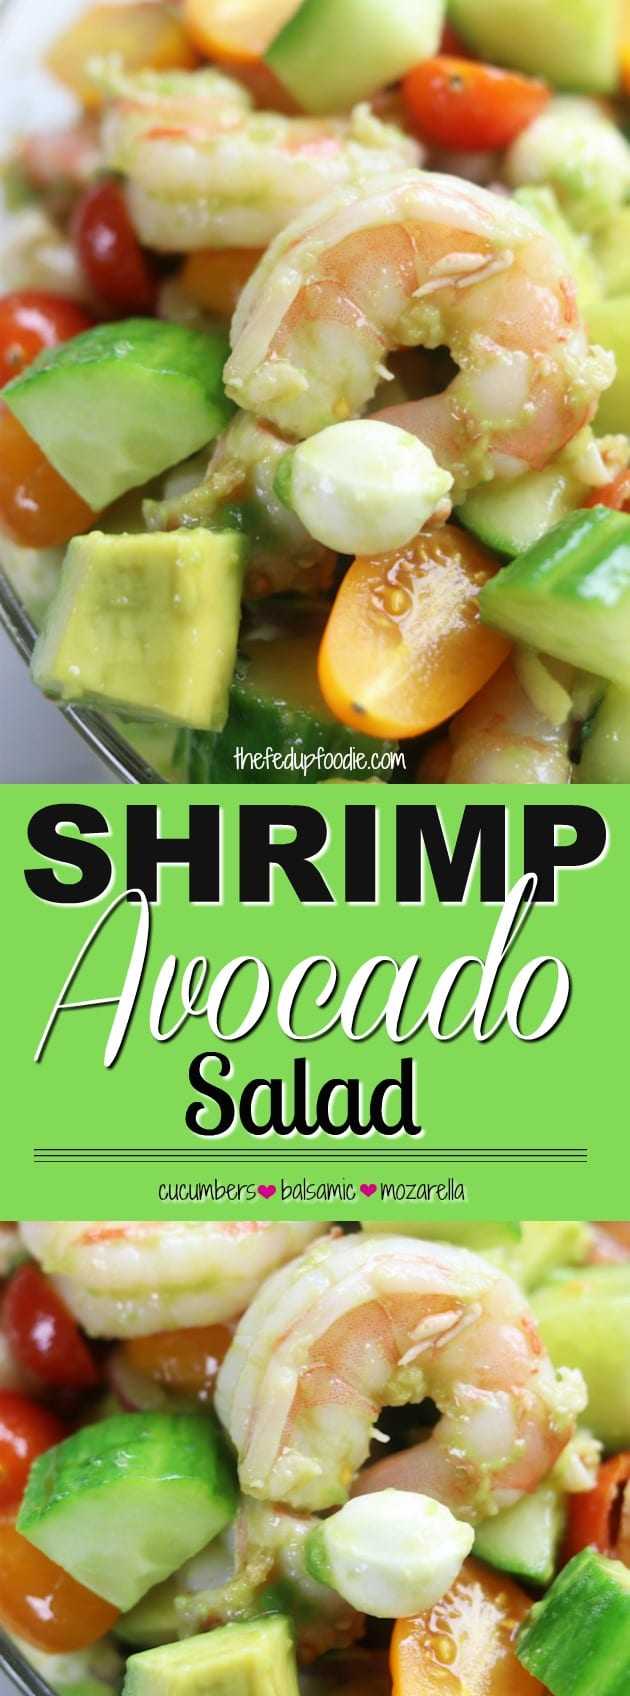 Shrimp Avocado Salad is a tasty and low-carb recipe perfect for a refreshing lunch on a hot summer day. A balsamic, olive oil and garlic dressing surrounds chilled shrimp, avocado, mozzarella and tomatoes. https://www.thefedupfoodie.com